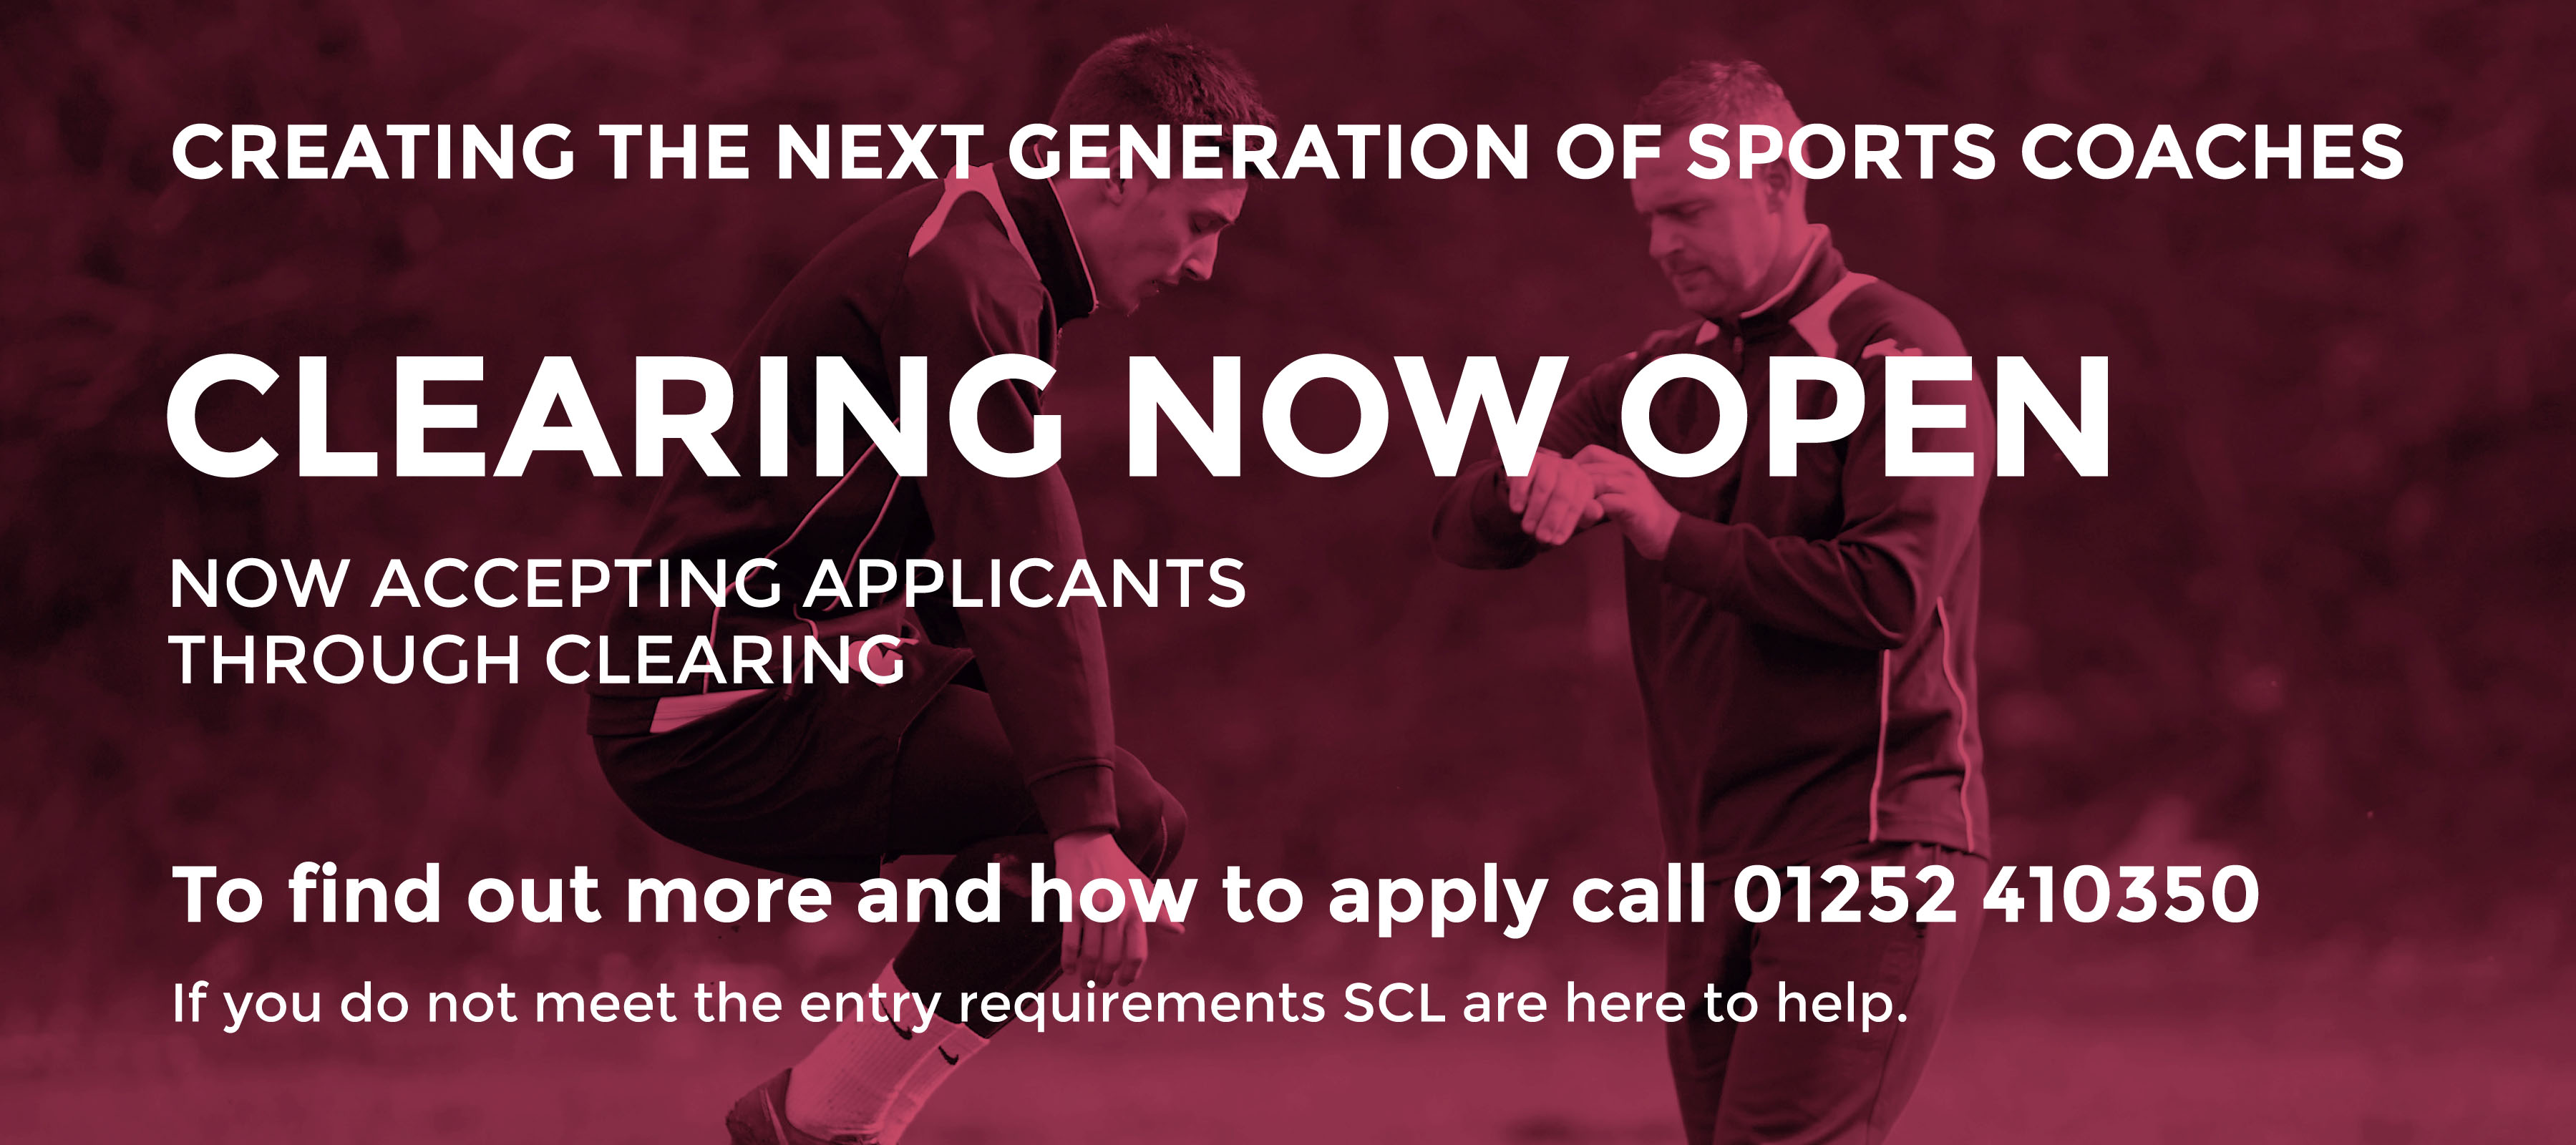 Foundation degree in sports coaching with SCL and De montfort university